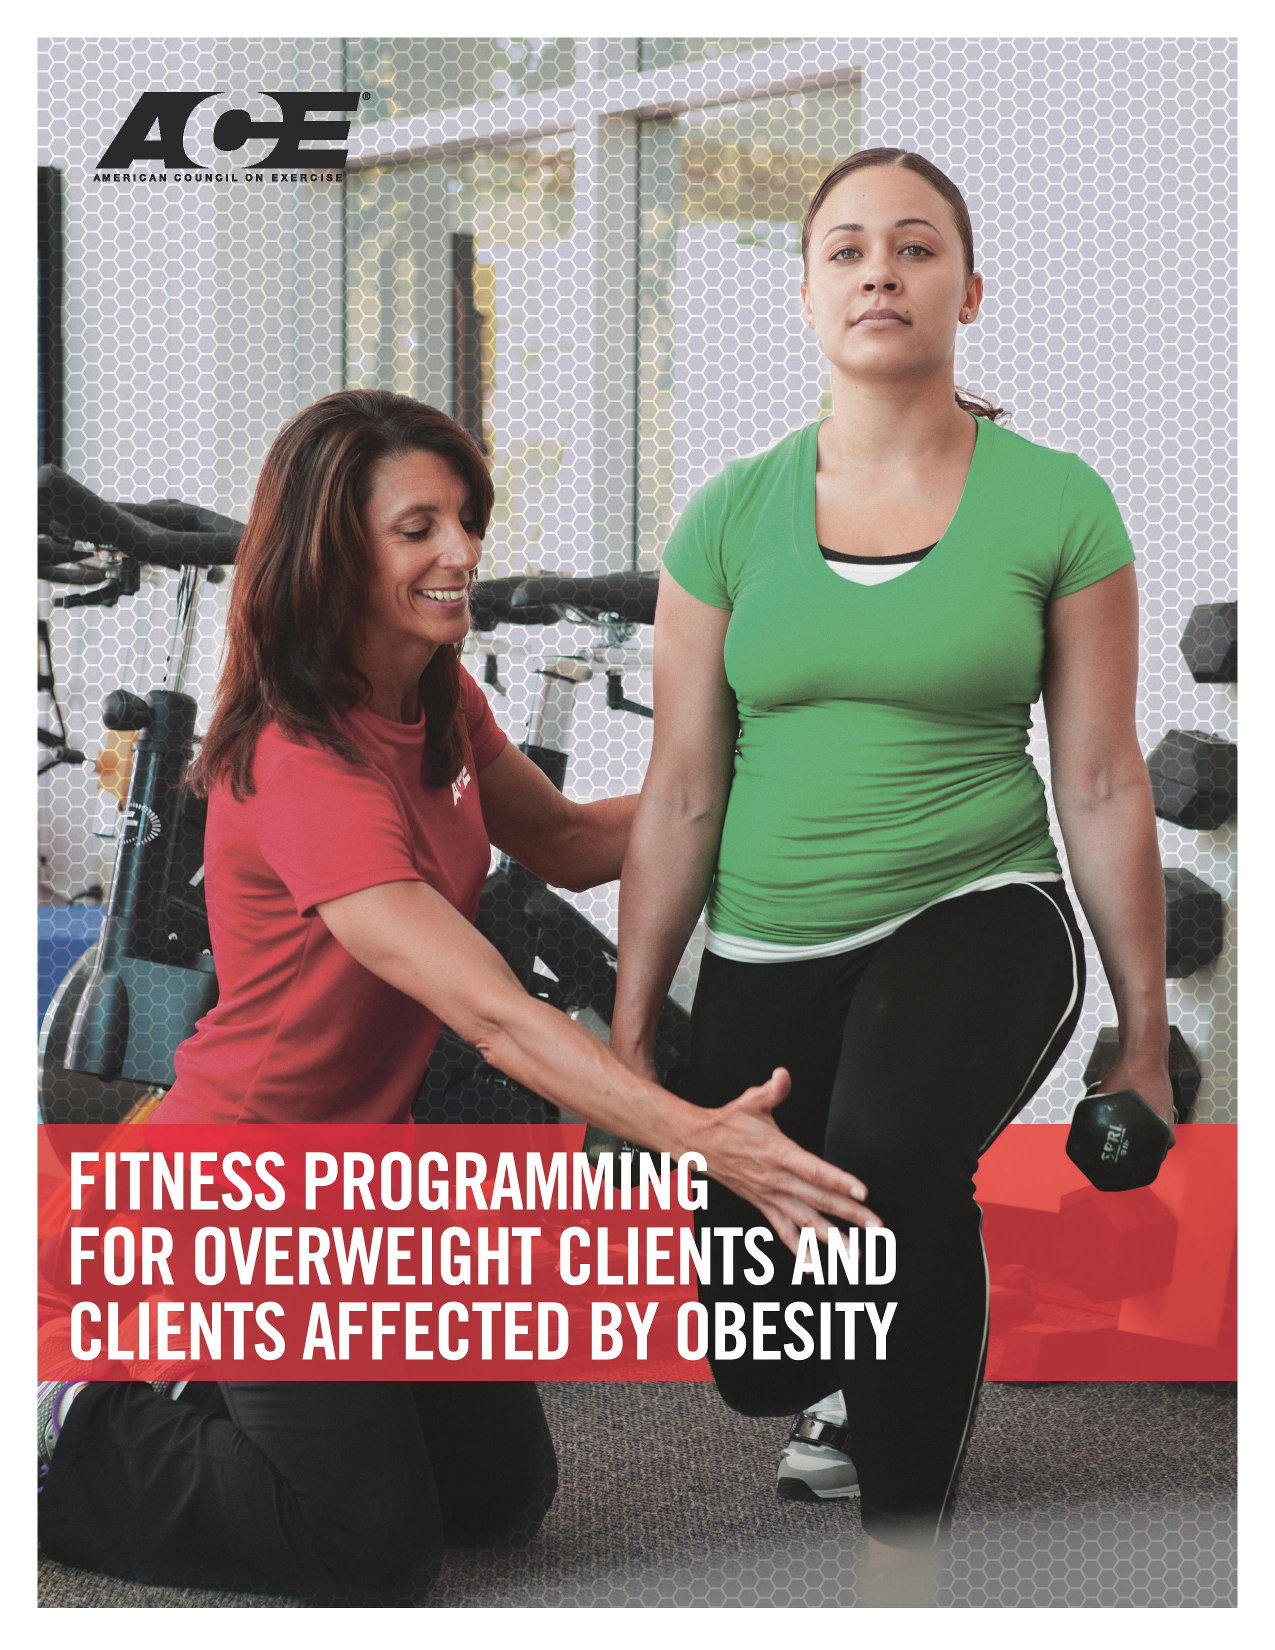 ACE Fitness Programming & Obesity Workshop cover